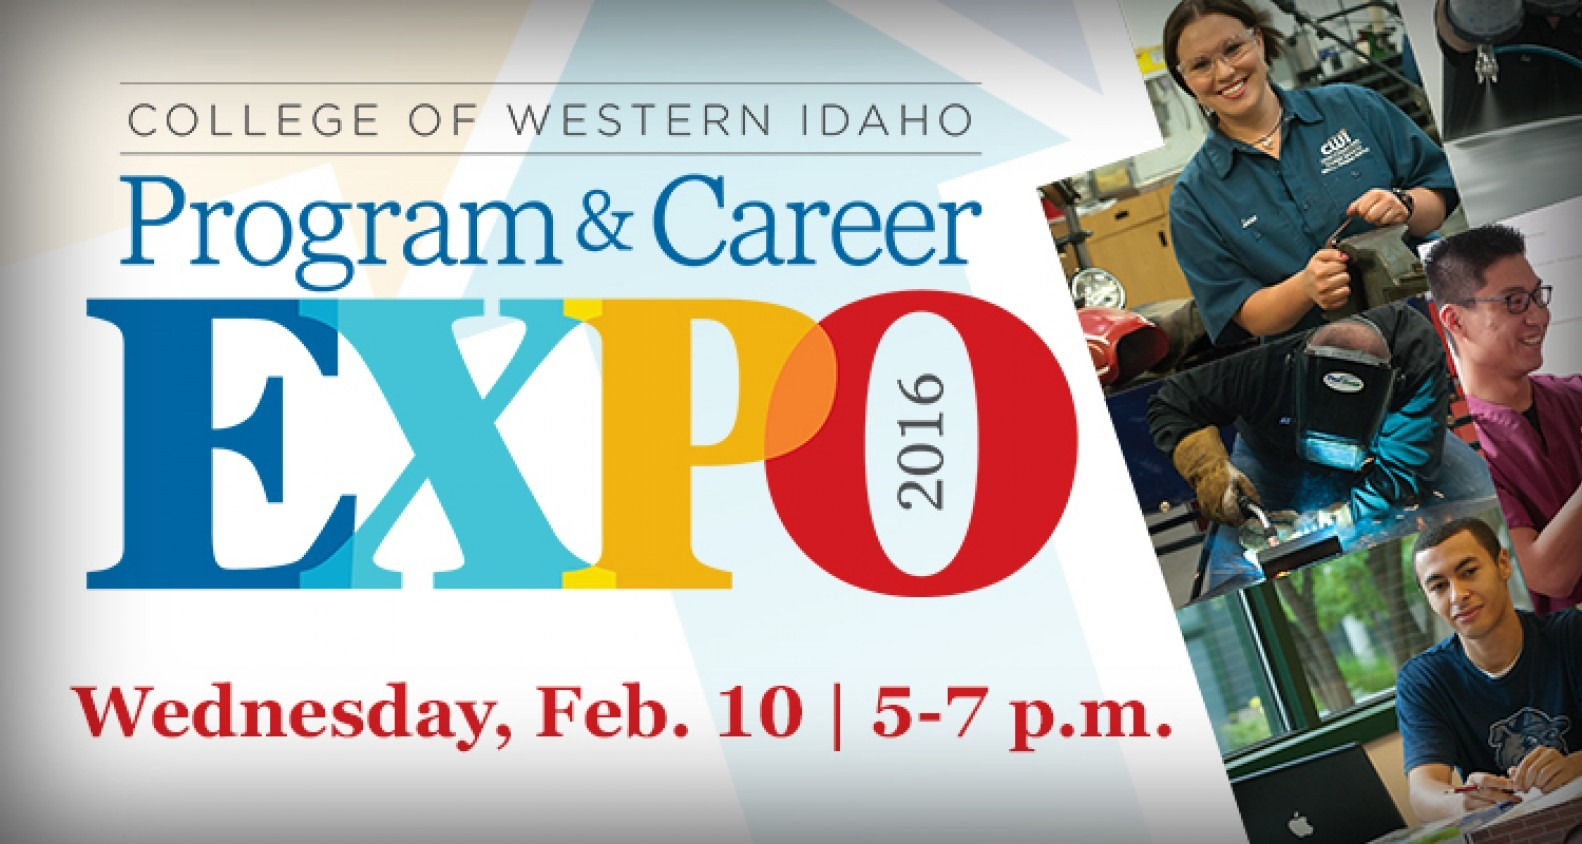 CWI Program & Career Expo | Wednesday, Feb. 10 | 5-7 p.m.